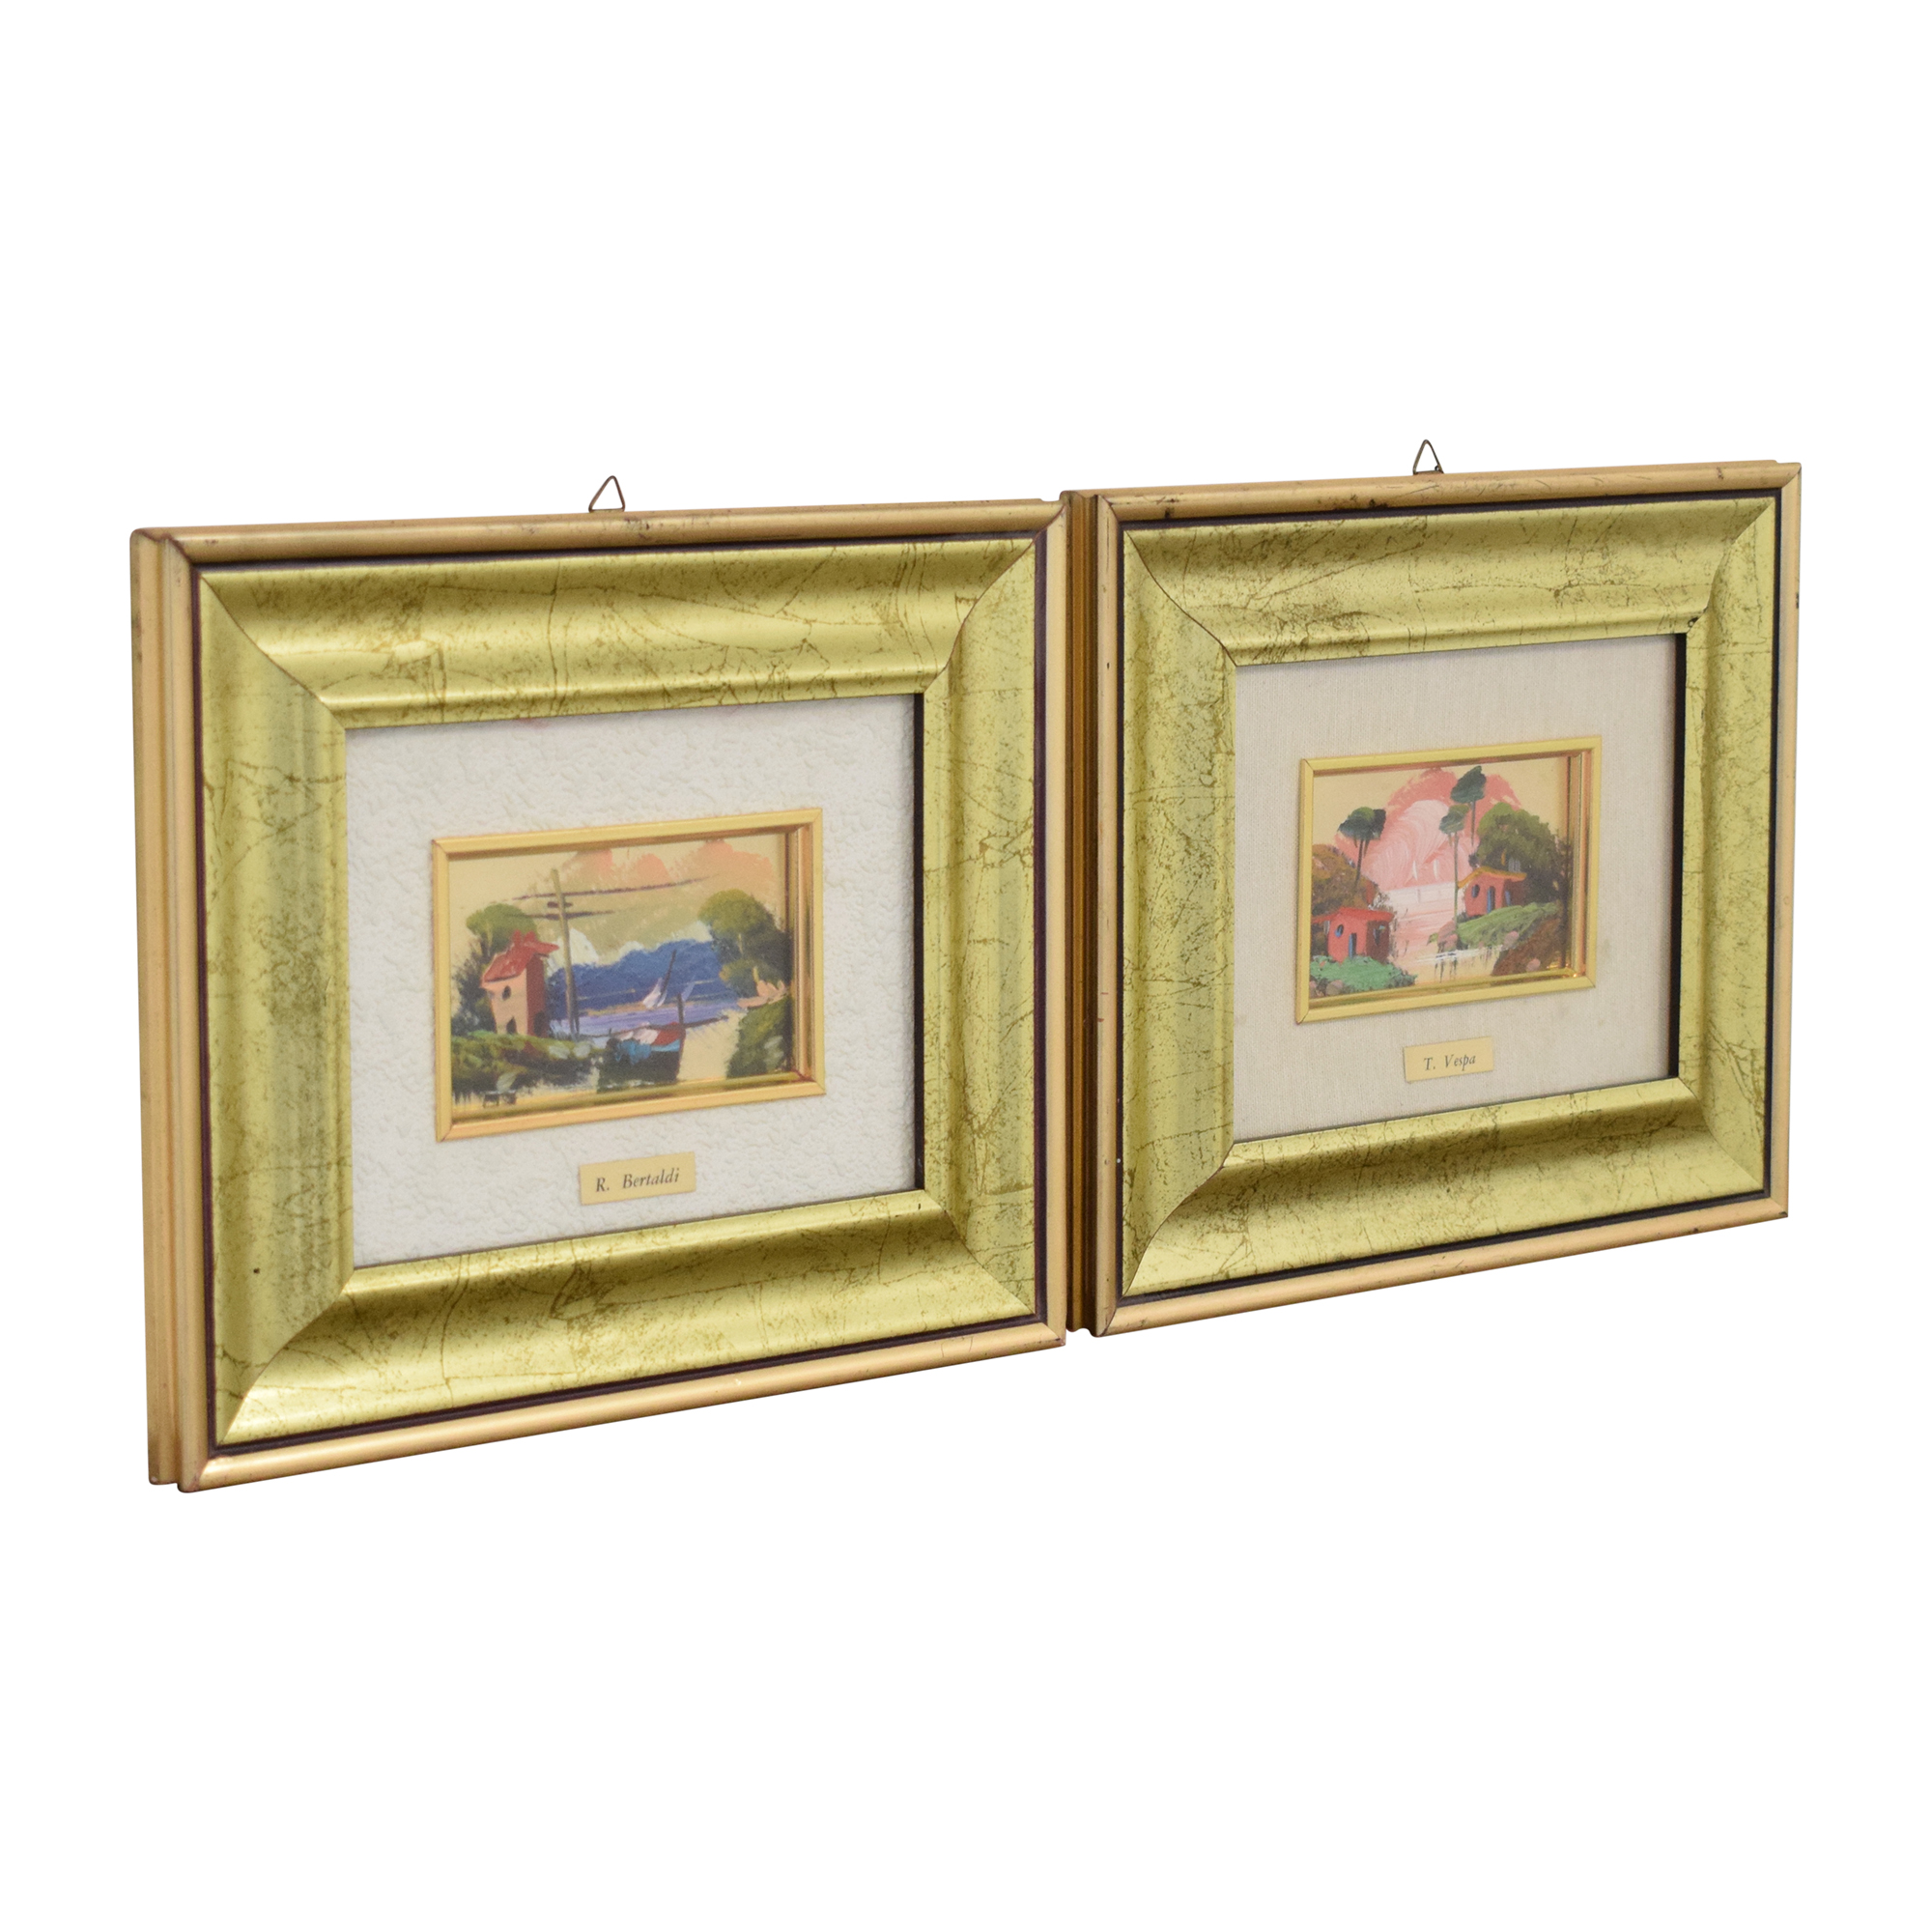 Framed Landscape Wall Arts on sale